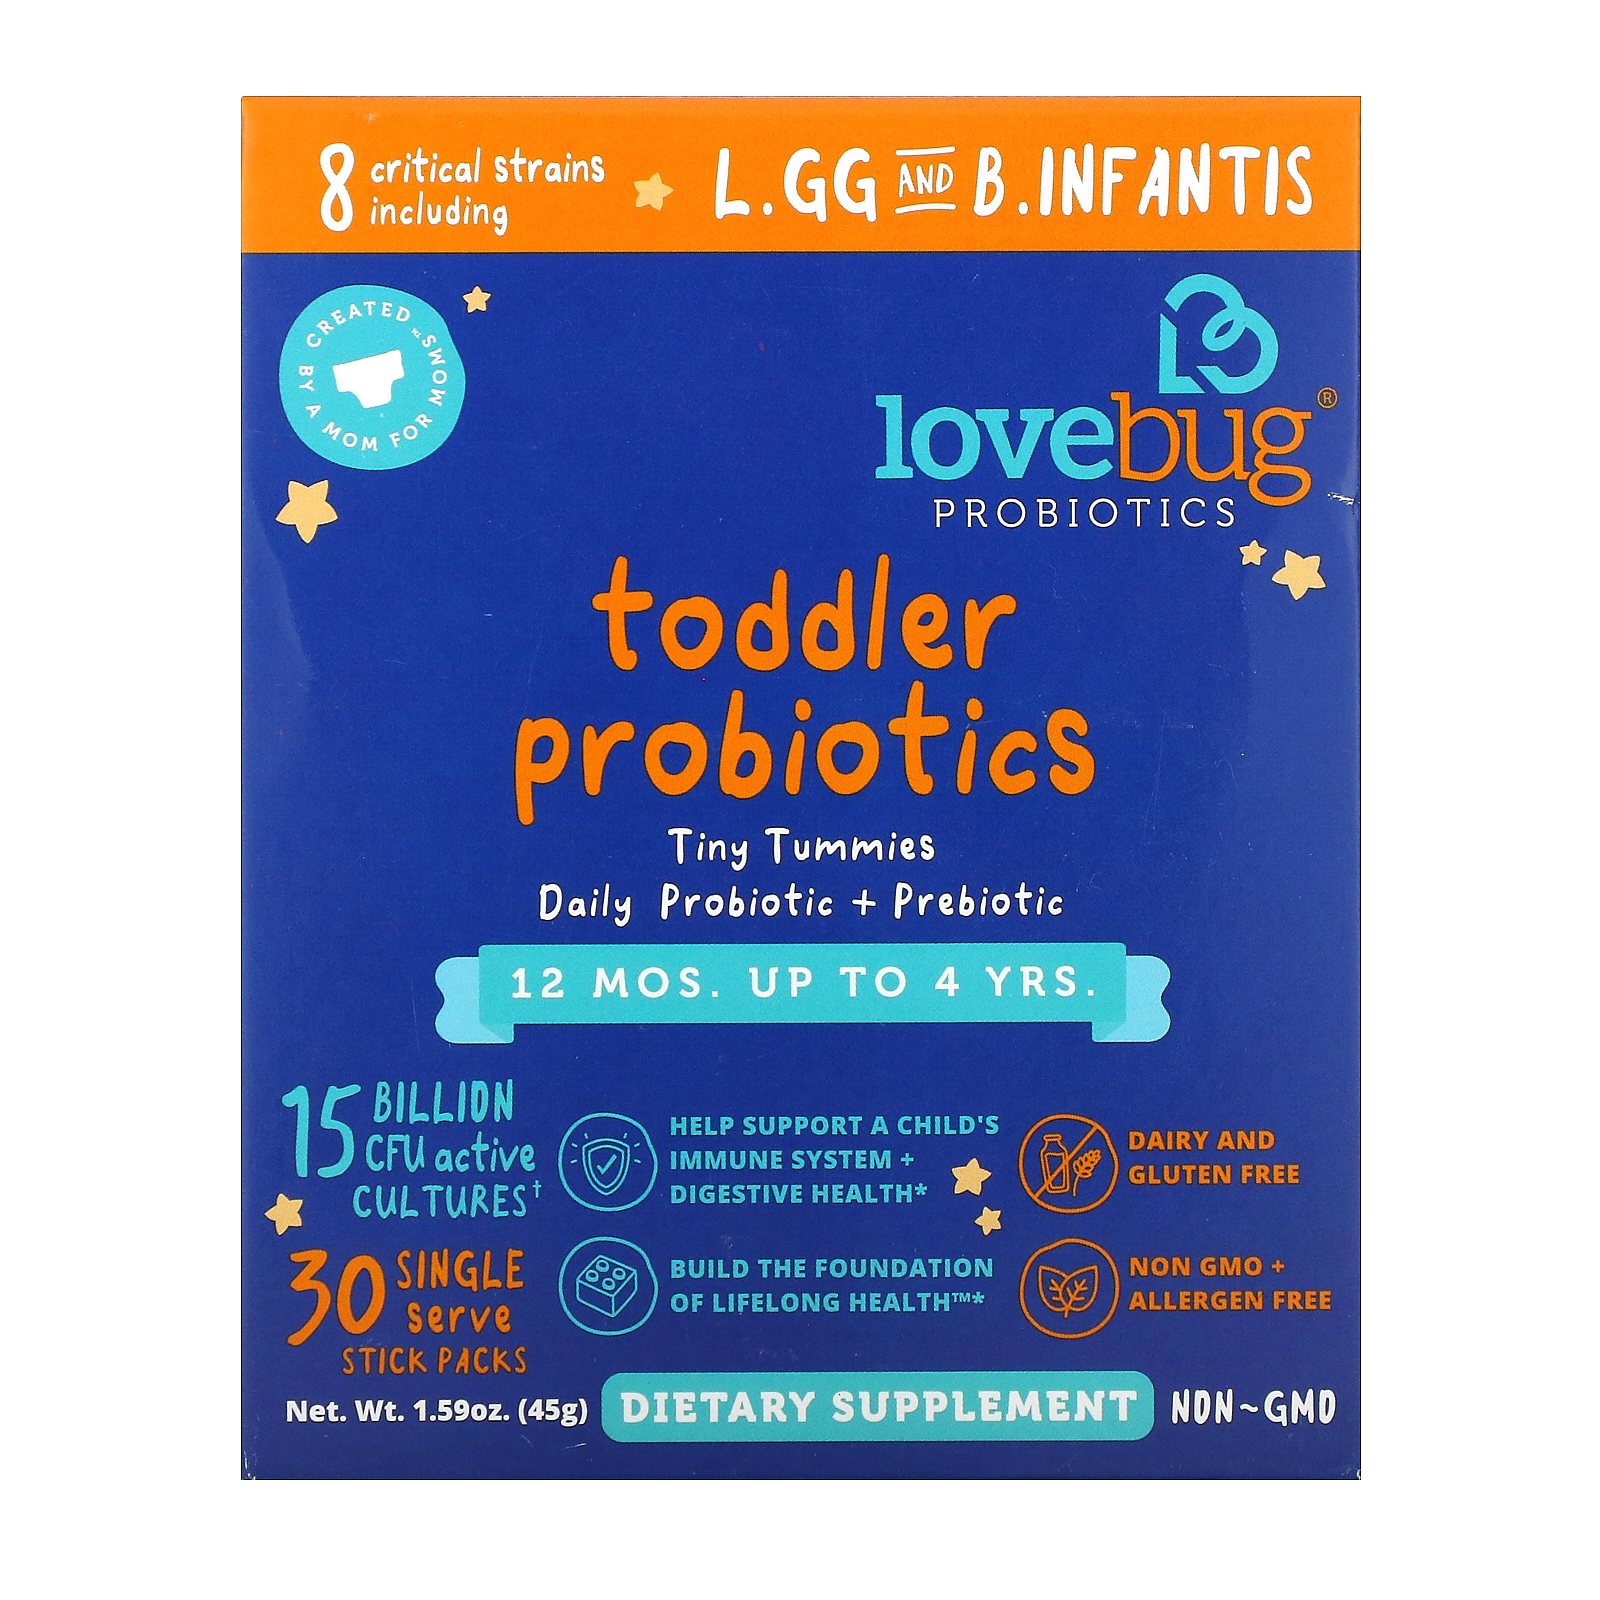 LoveBug, Toddler Probiotics, Tiny Tummies Daily Probiotic + Prebiotic, 12 Mos. Up To 4 Yrs., 30 Single Serve Stick Packs, 1.59 oz ( 45 g)